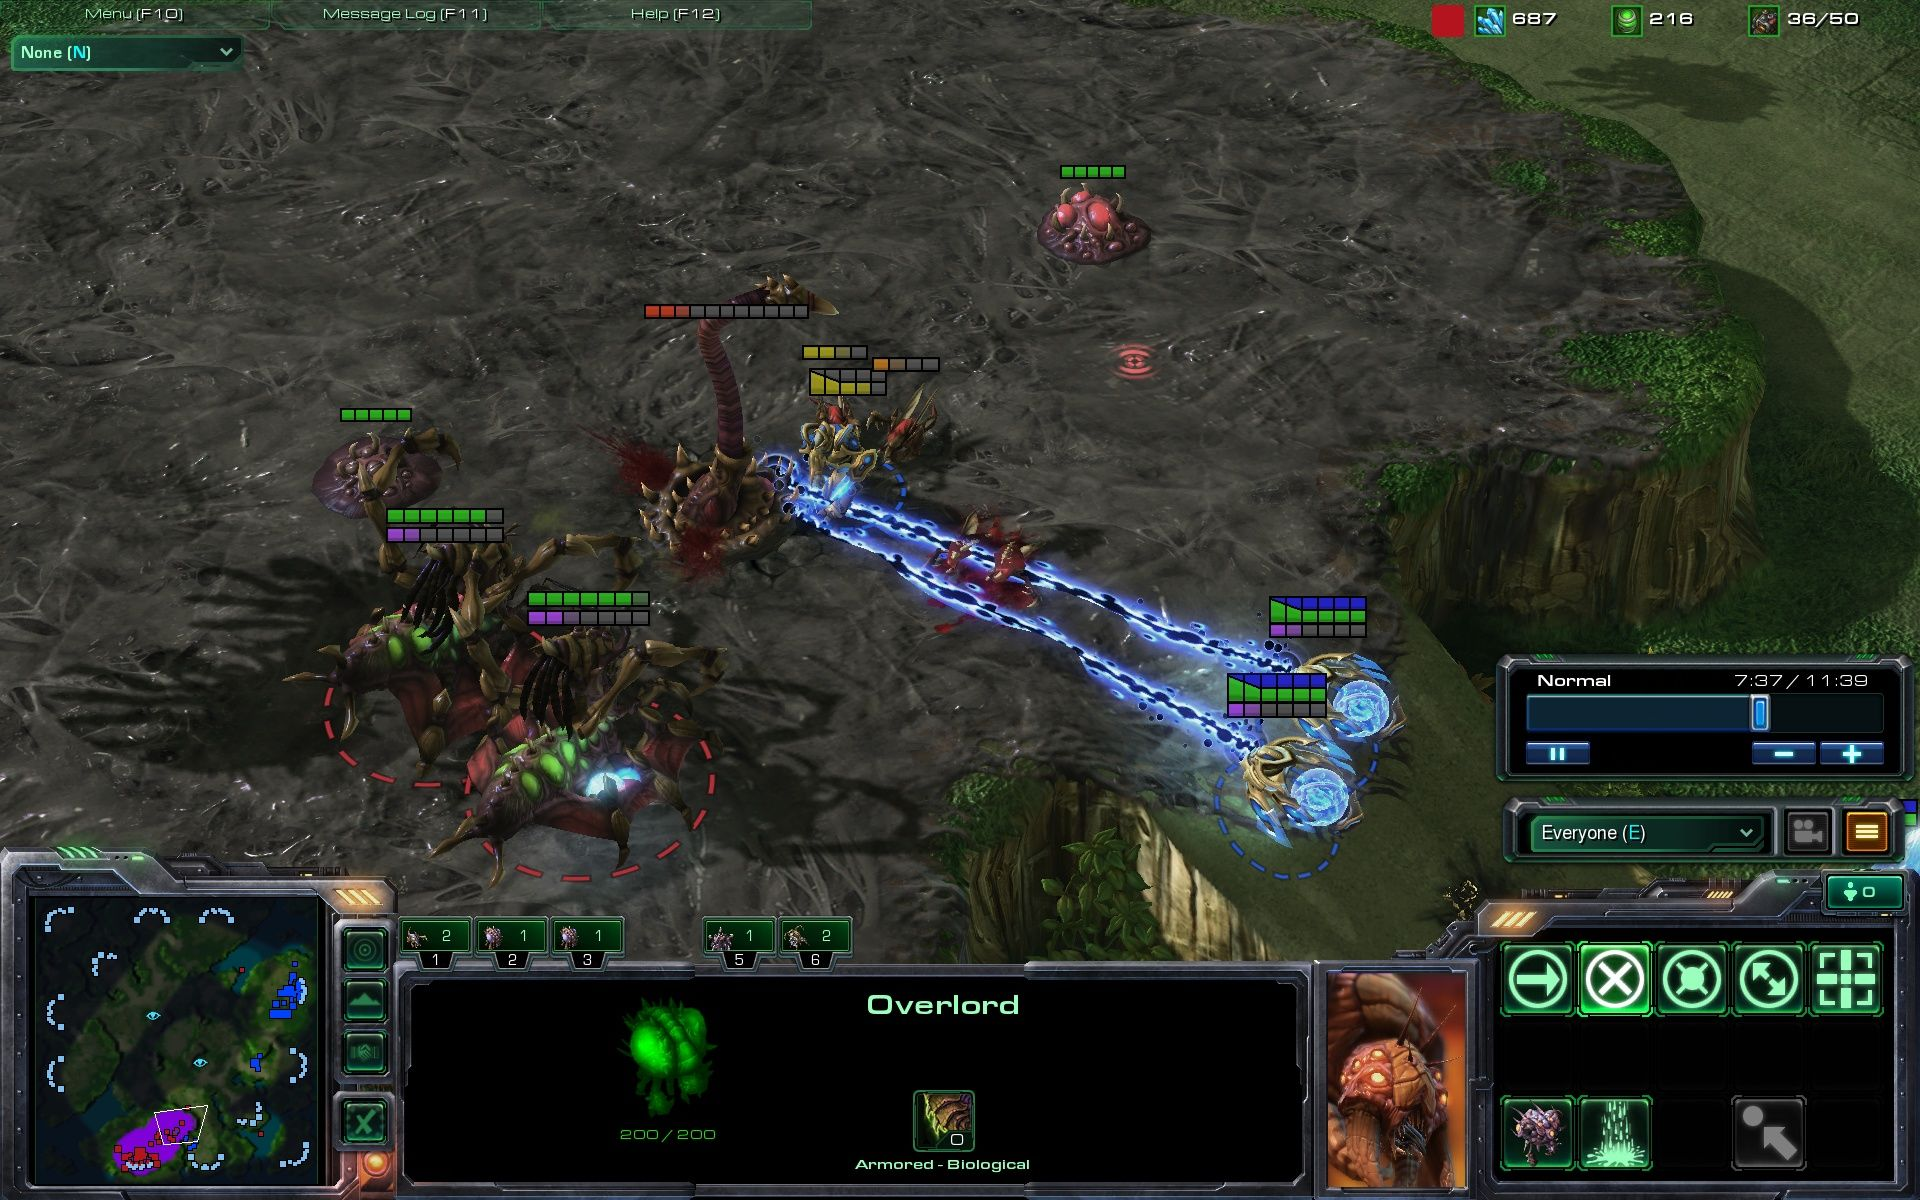 StarCraft II: Wings of Liberty Windows Multiplayer: The Protoss try an early attack.